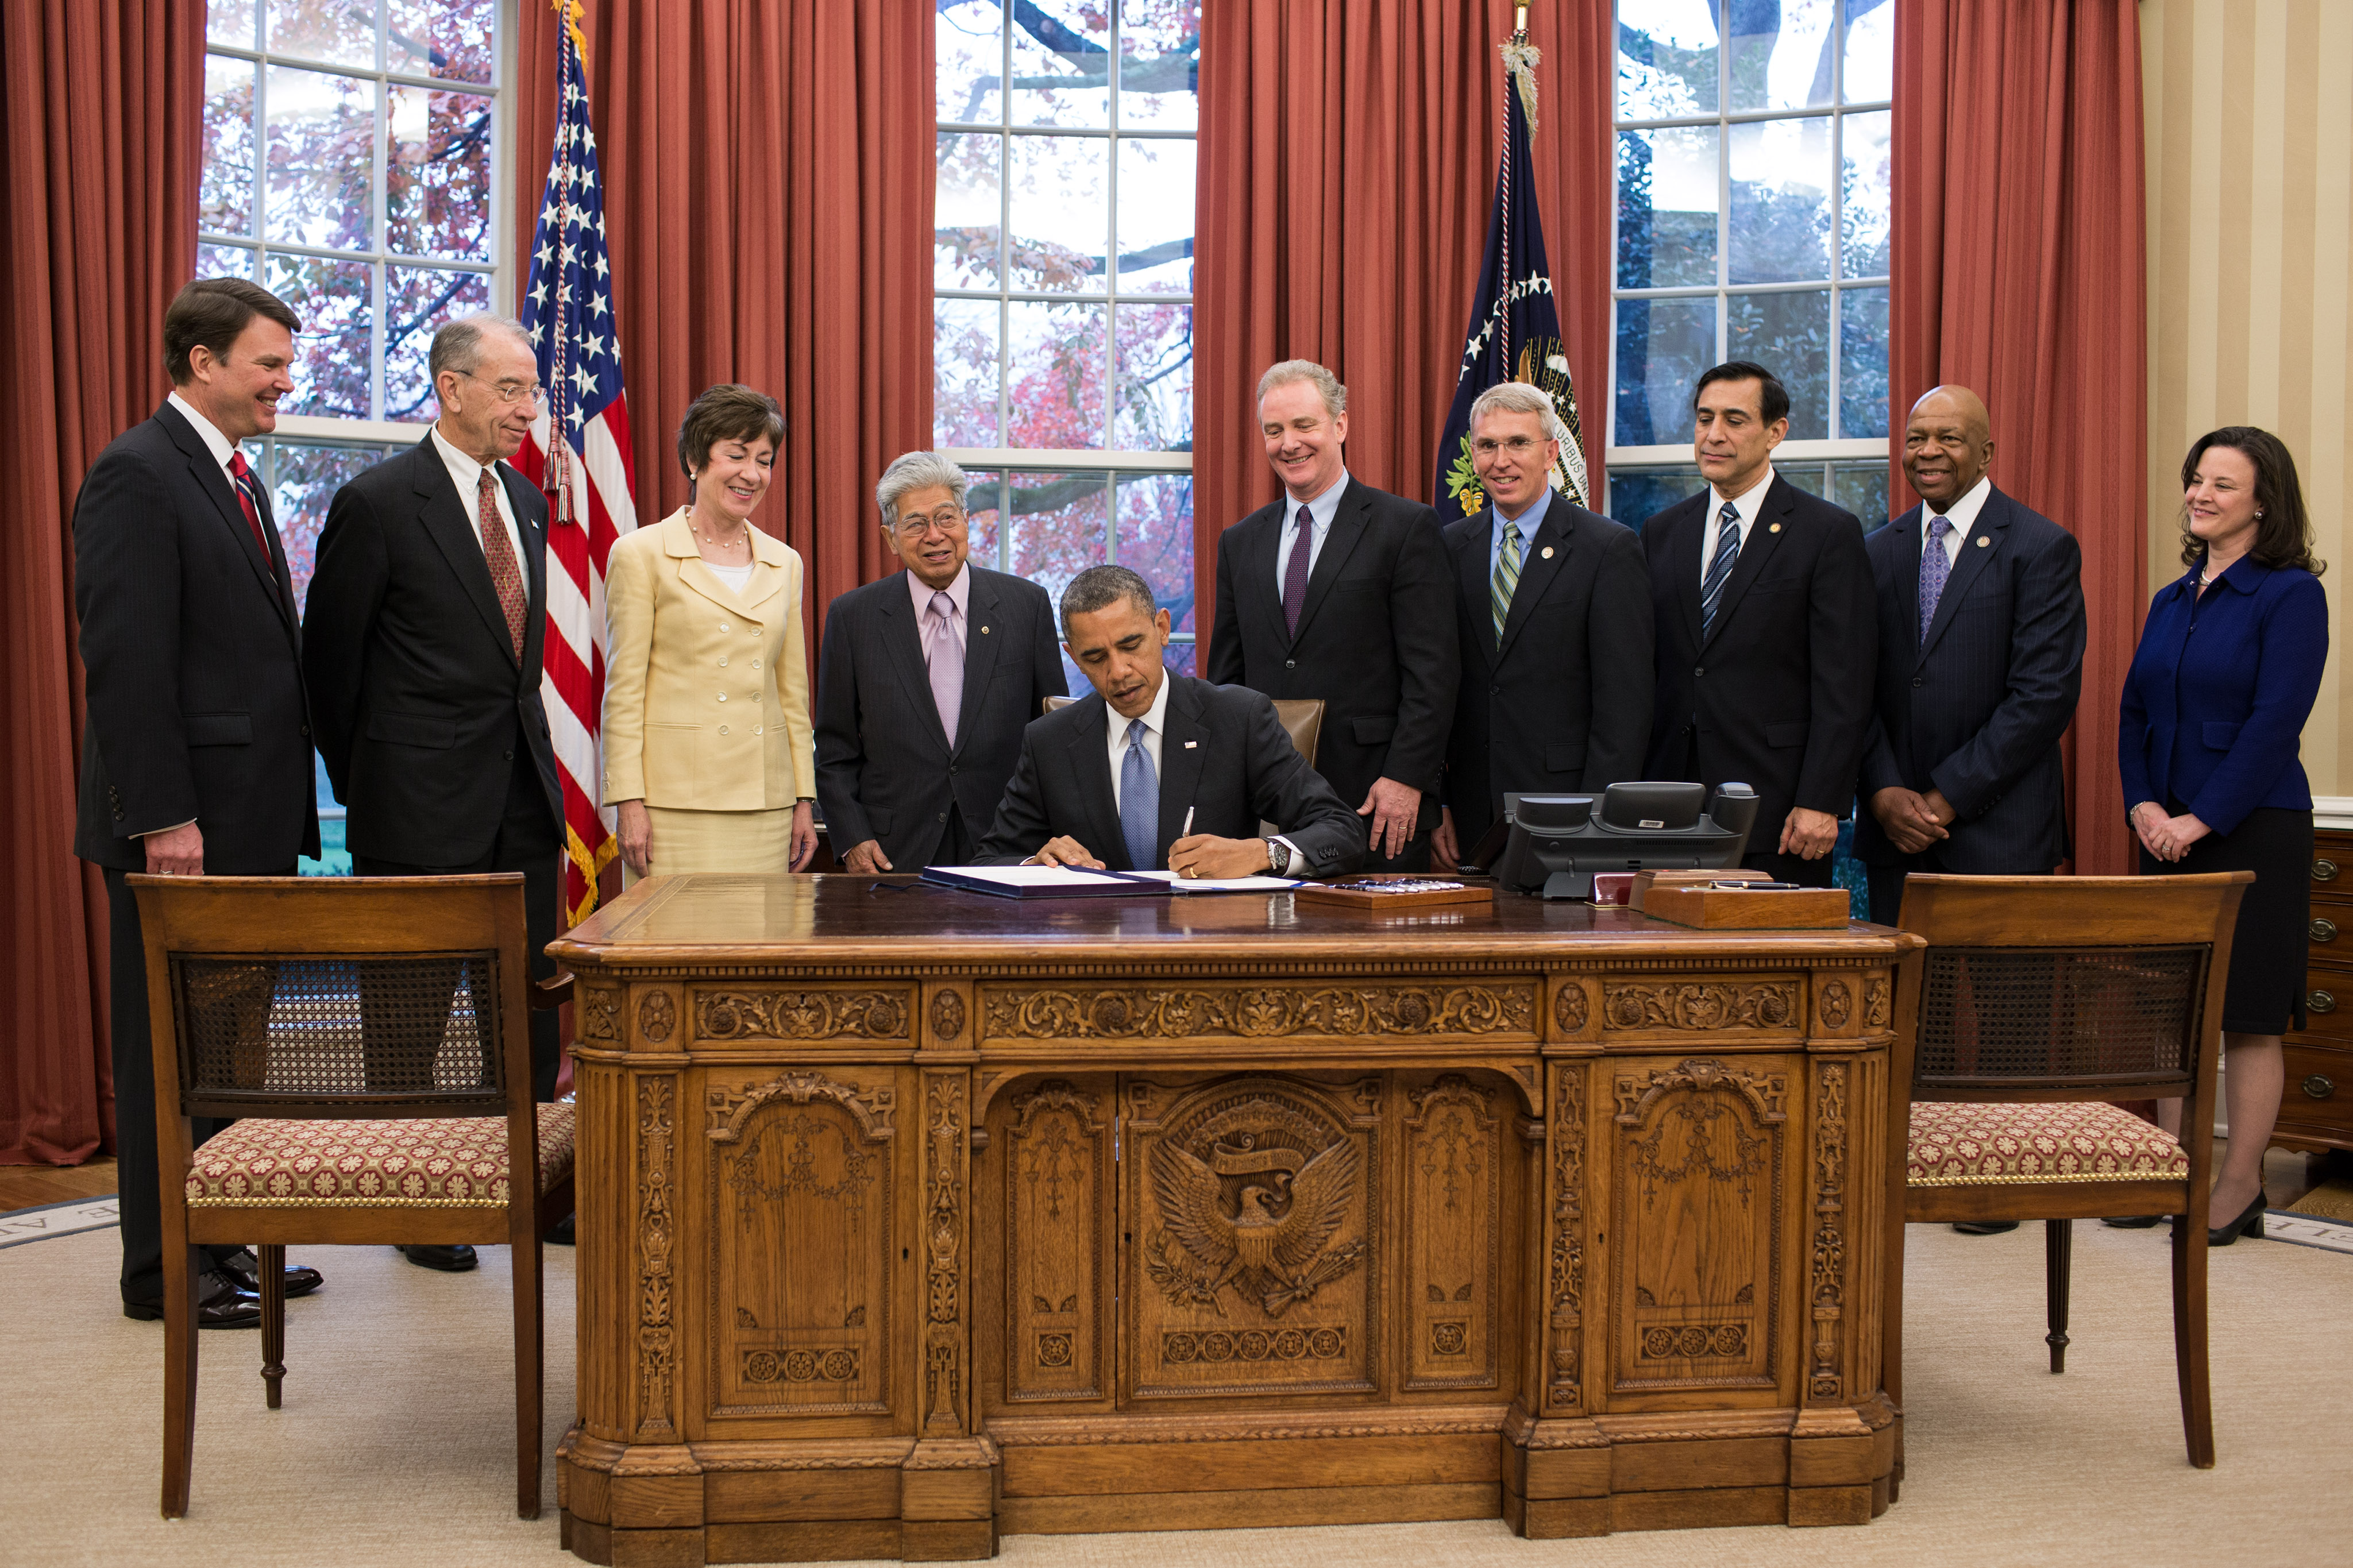 President Obama Signs Senator Akaka's Whistleblower Protection Enhancement Act into Law in Oval Office Ceremony